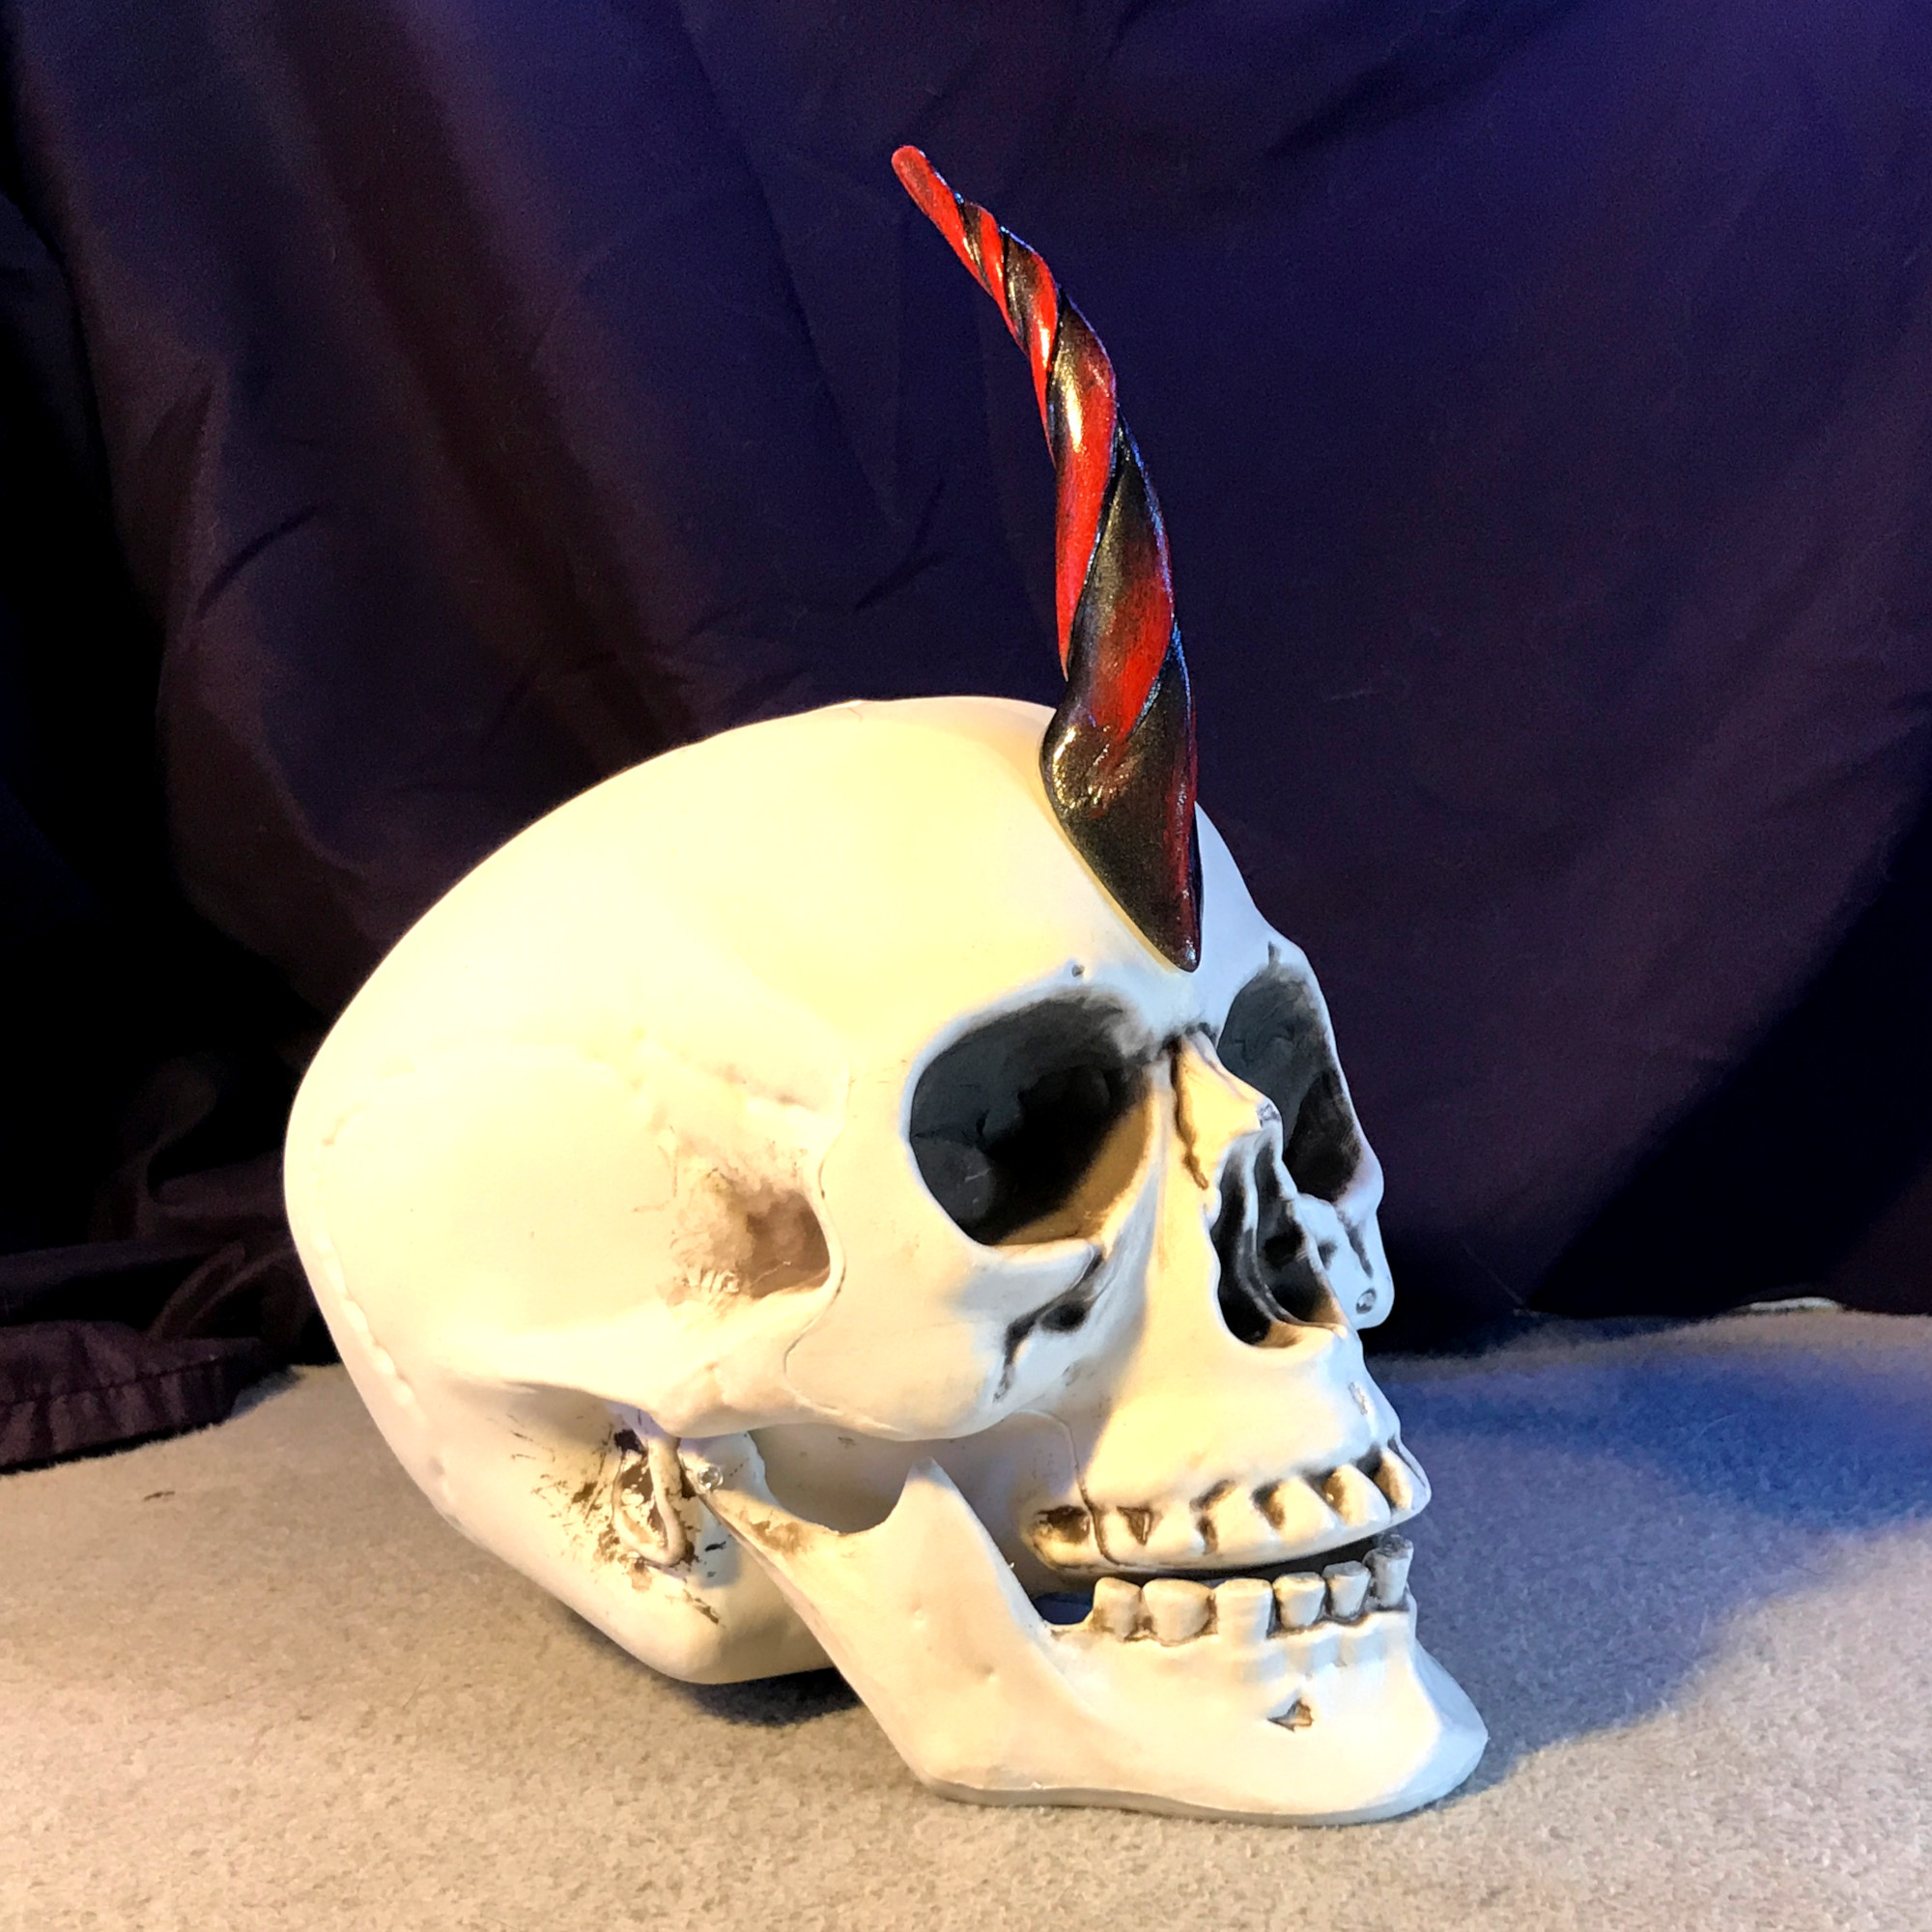 Red and Black Channeled, Adult Size Unicorn Horn